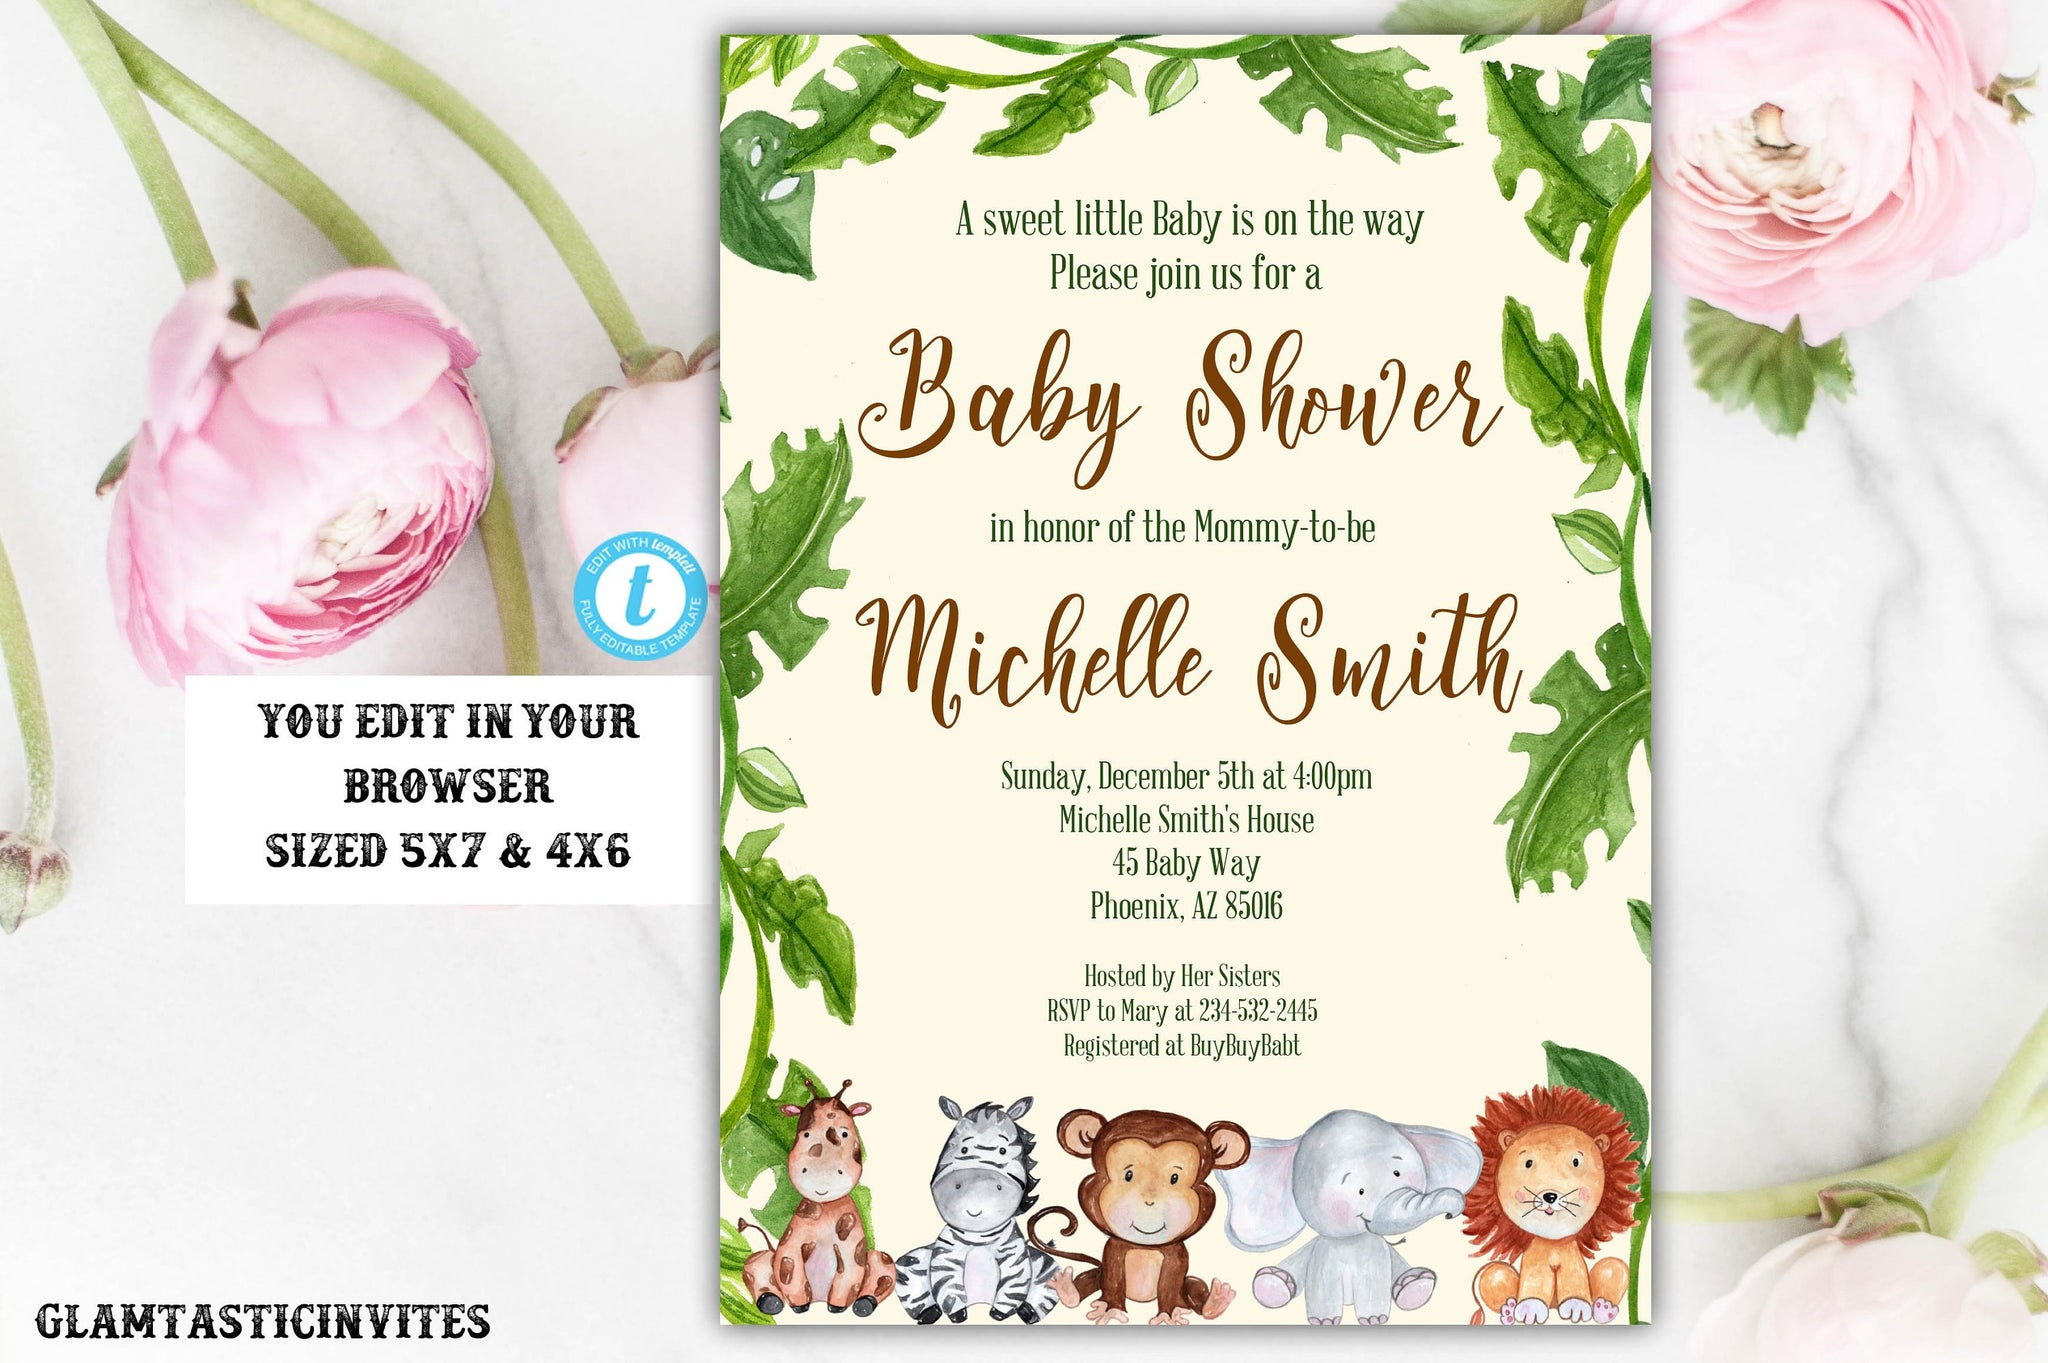 Jungle Baby Shower Invitation, Baby Shower Template, Baby Shower Invitation, Giraffe, Elephant, Monkey, Zebra, Safari, Jungle, You Edit, DIY